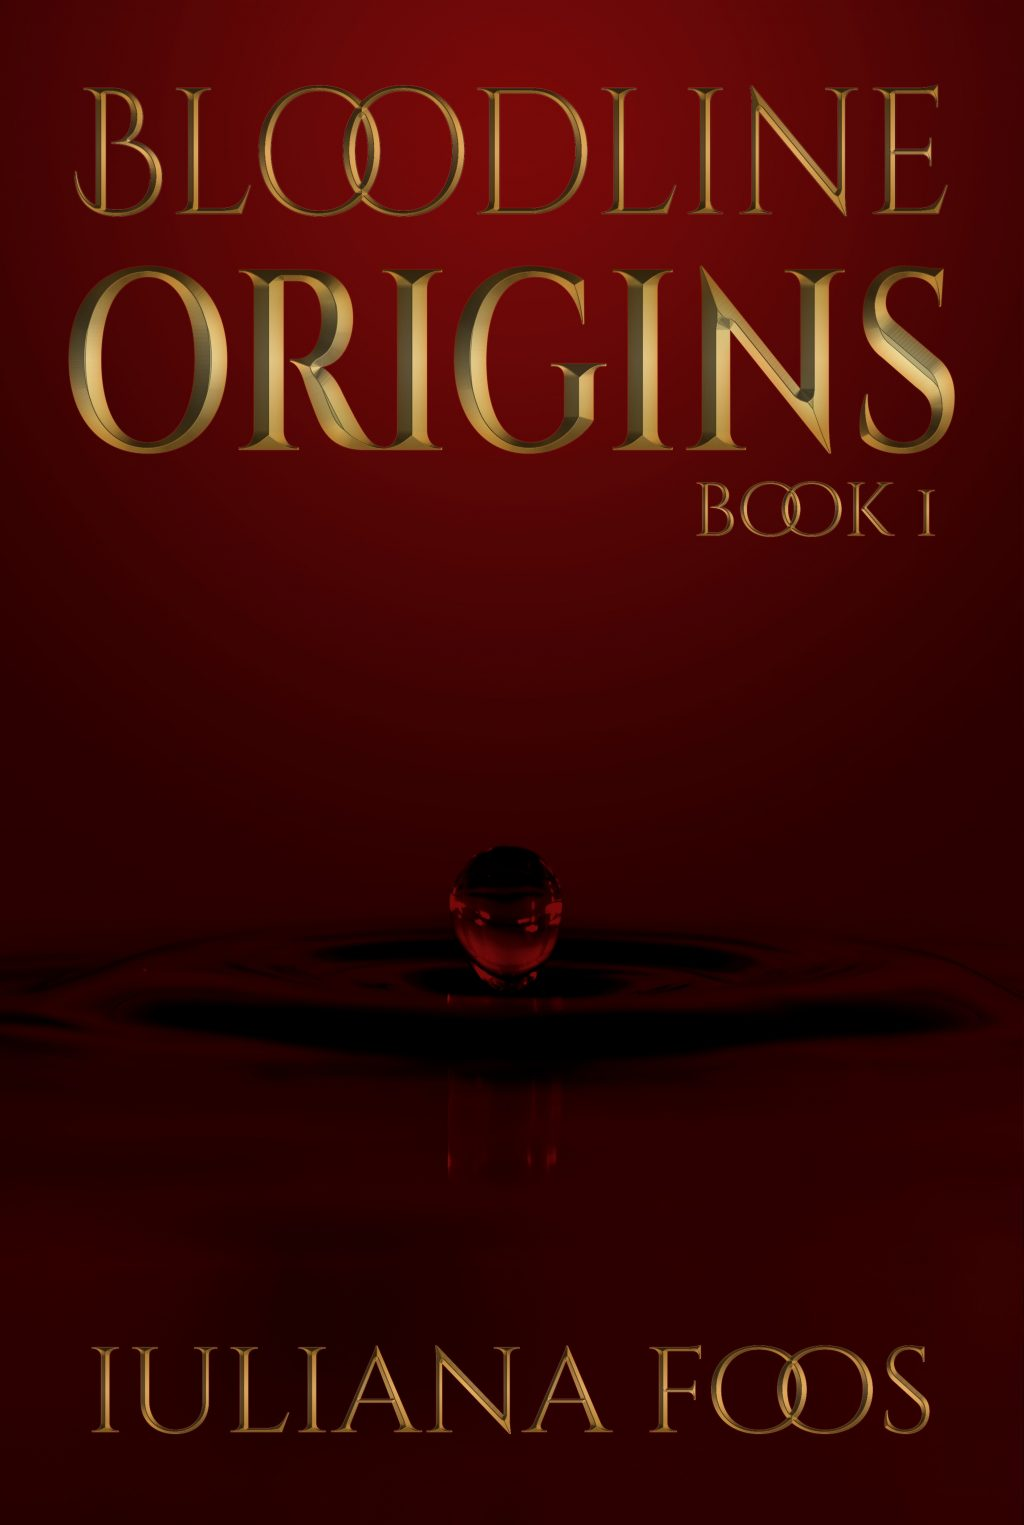 Bloodline Origins Book 1 by Iuliana Foos